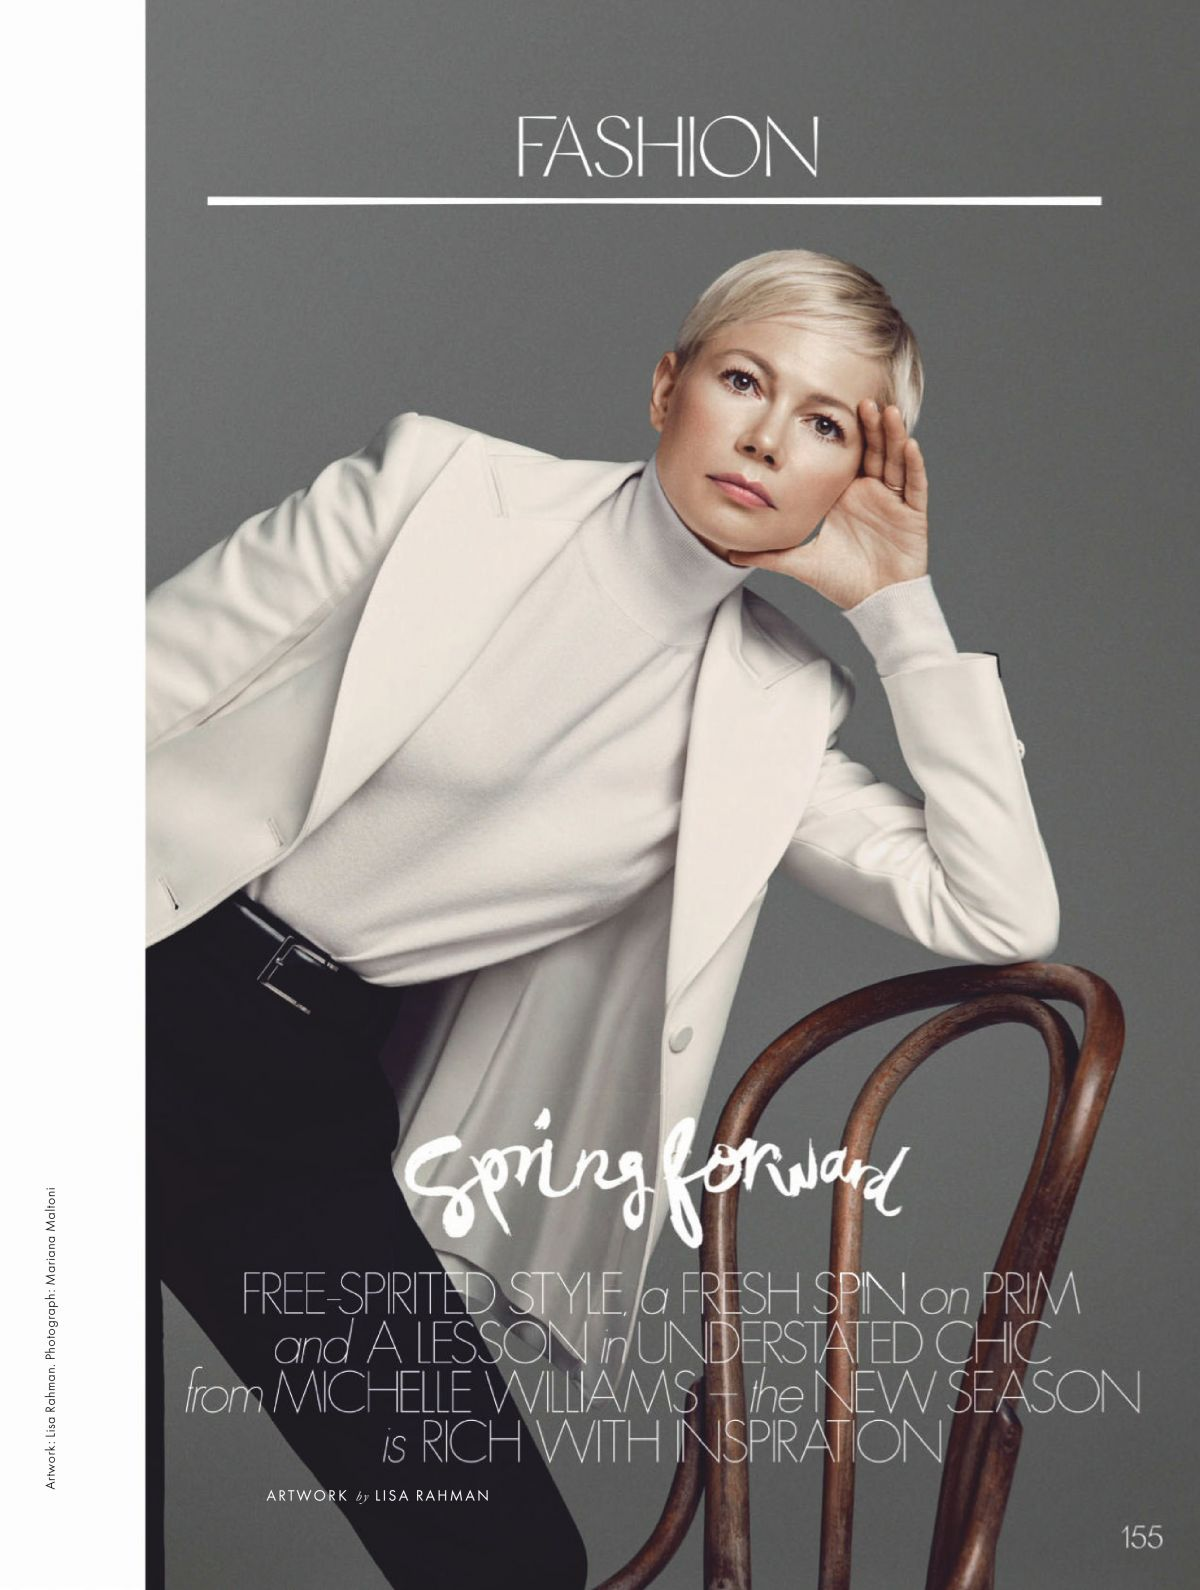 Michelle williams in me without you - 2 7